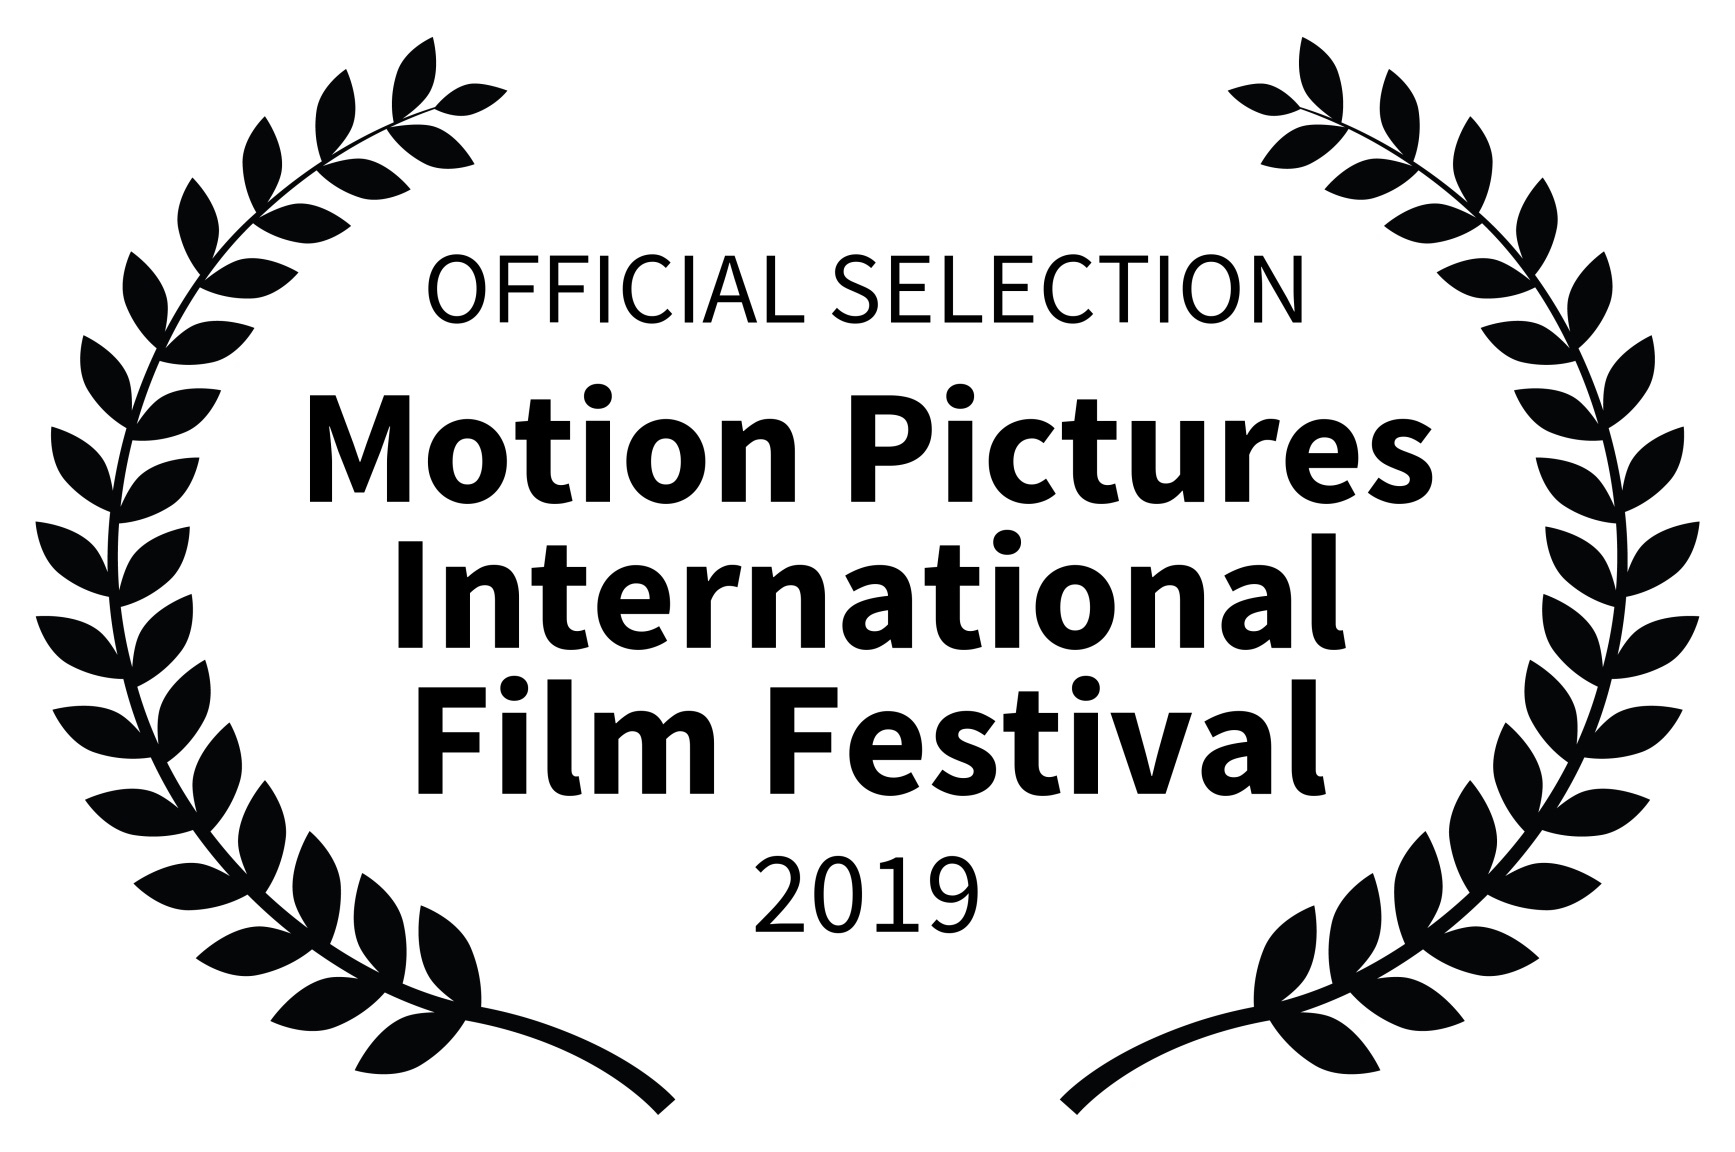 OFFICIAL SELECTION - Motion Pictures International Film Festival - 2019-1